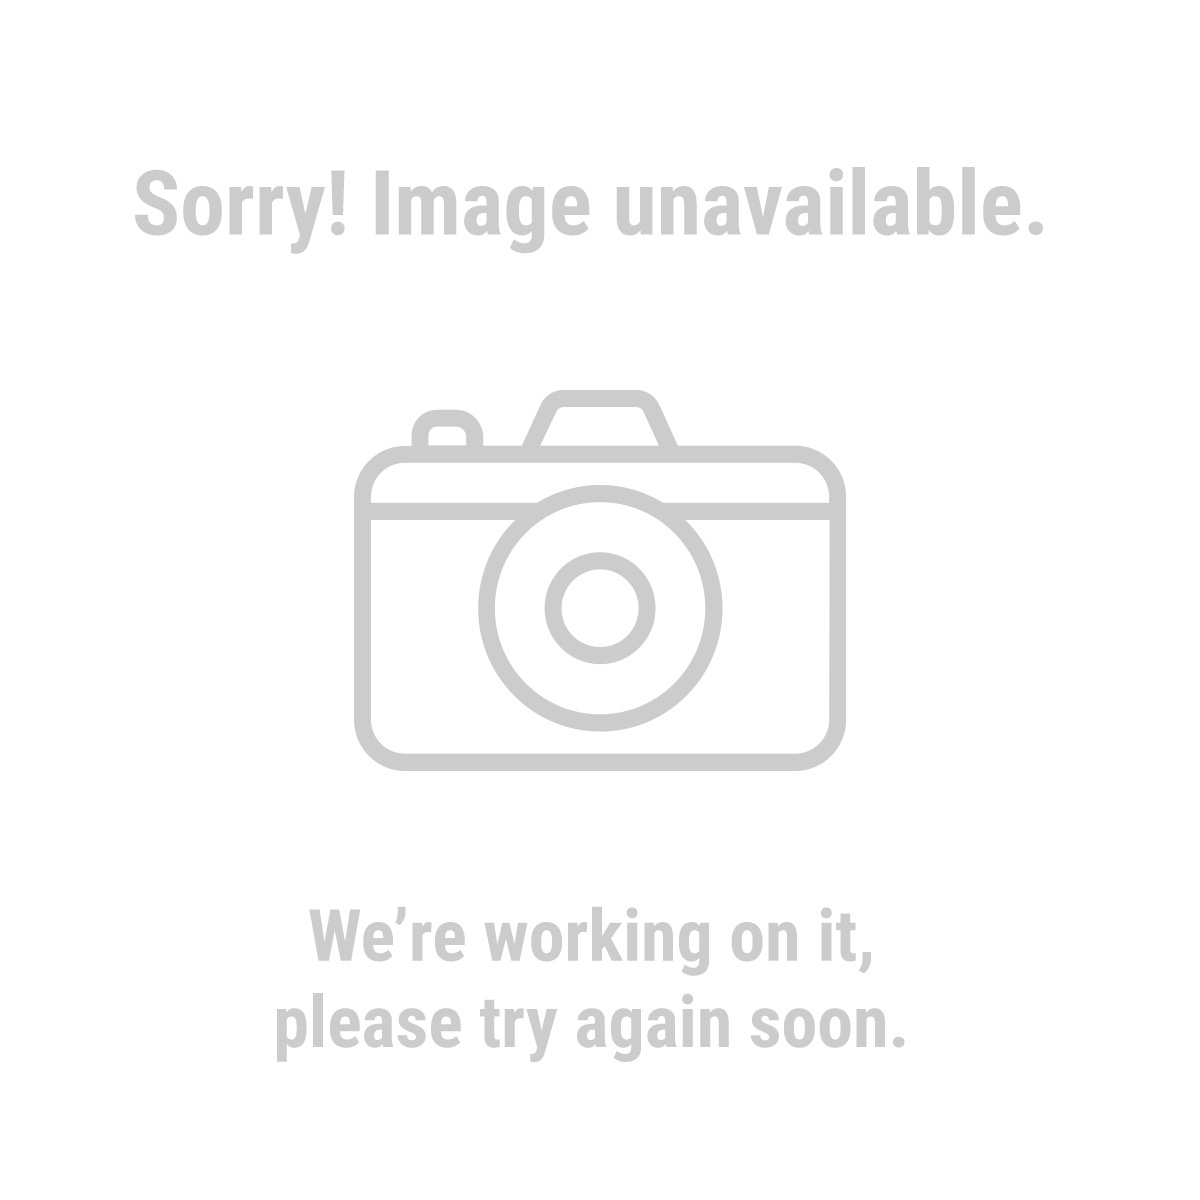 HFT 61865 100 ft. x 12 Gauge Outdoor Extension Cord